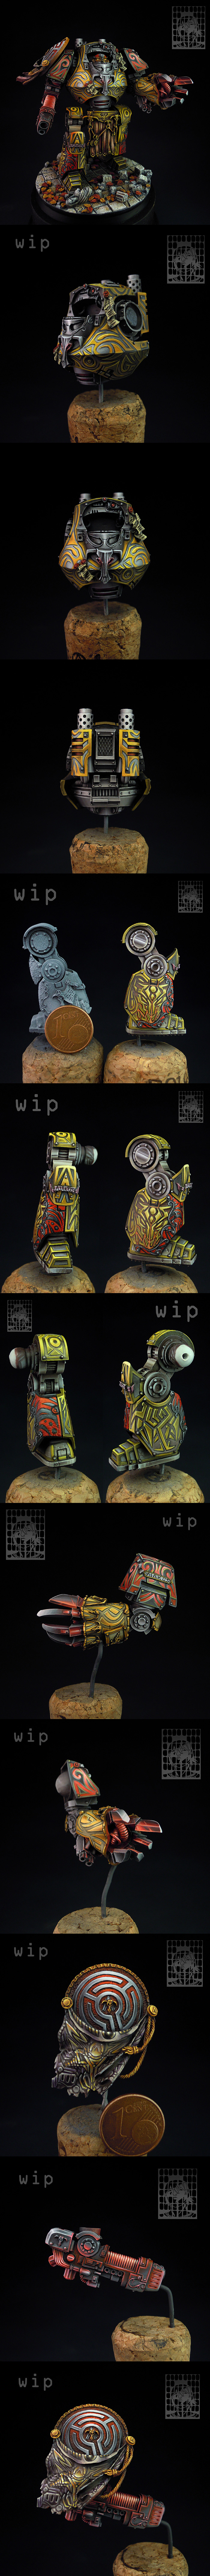 Hecaton Aiakos Dreadnought, details.